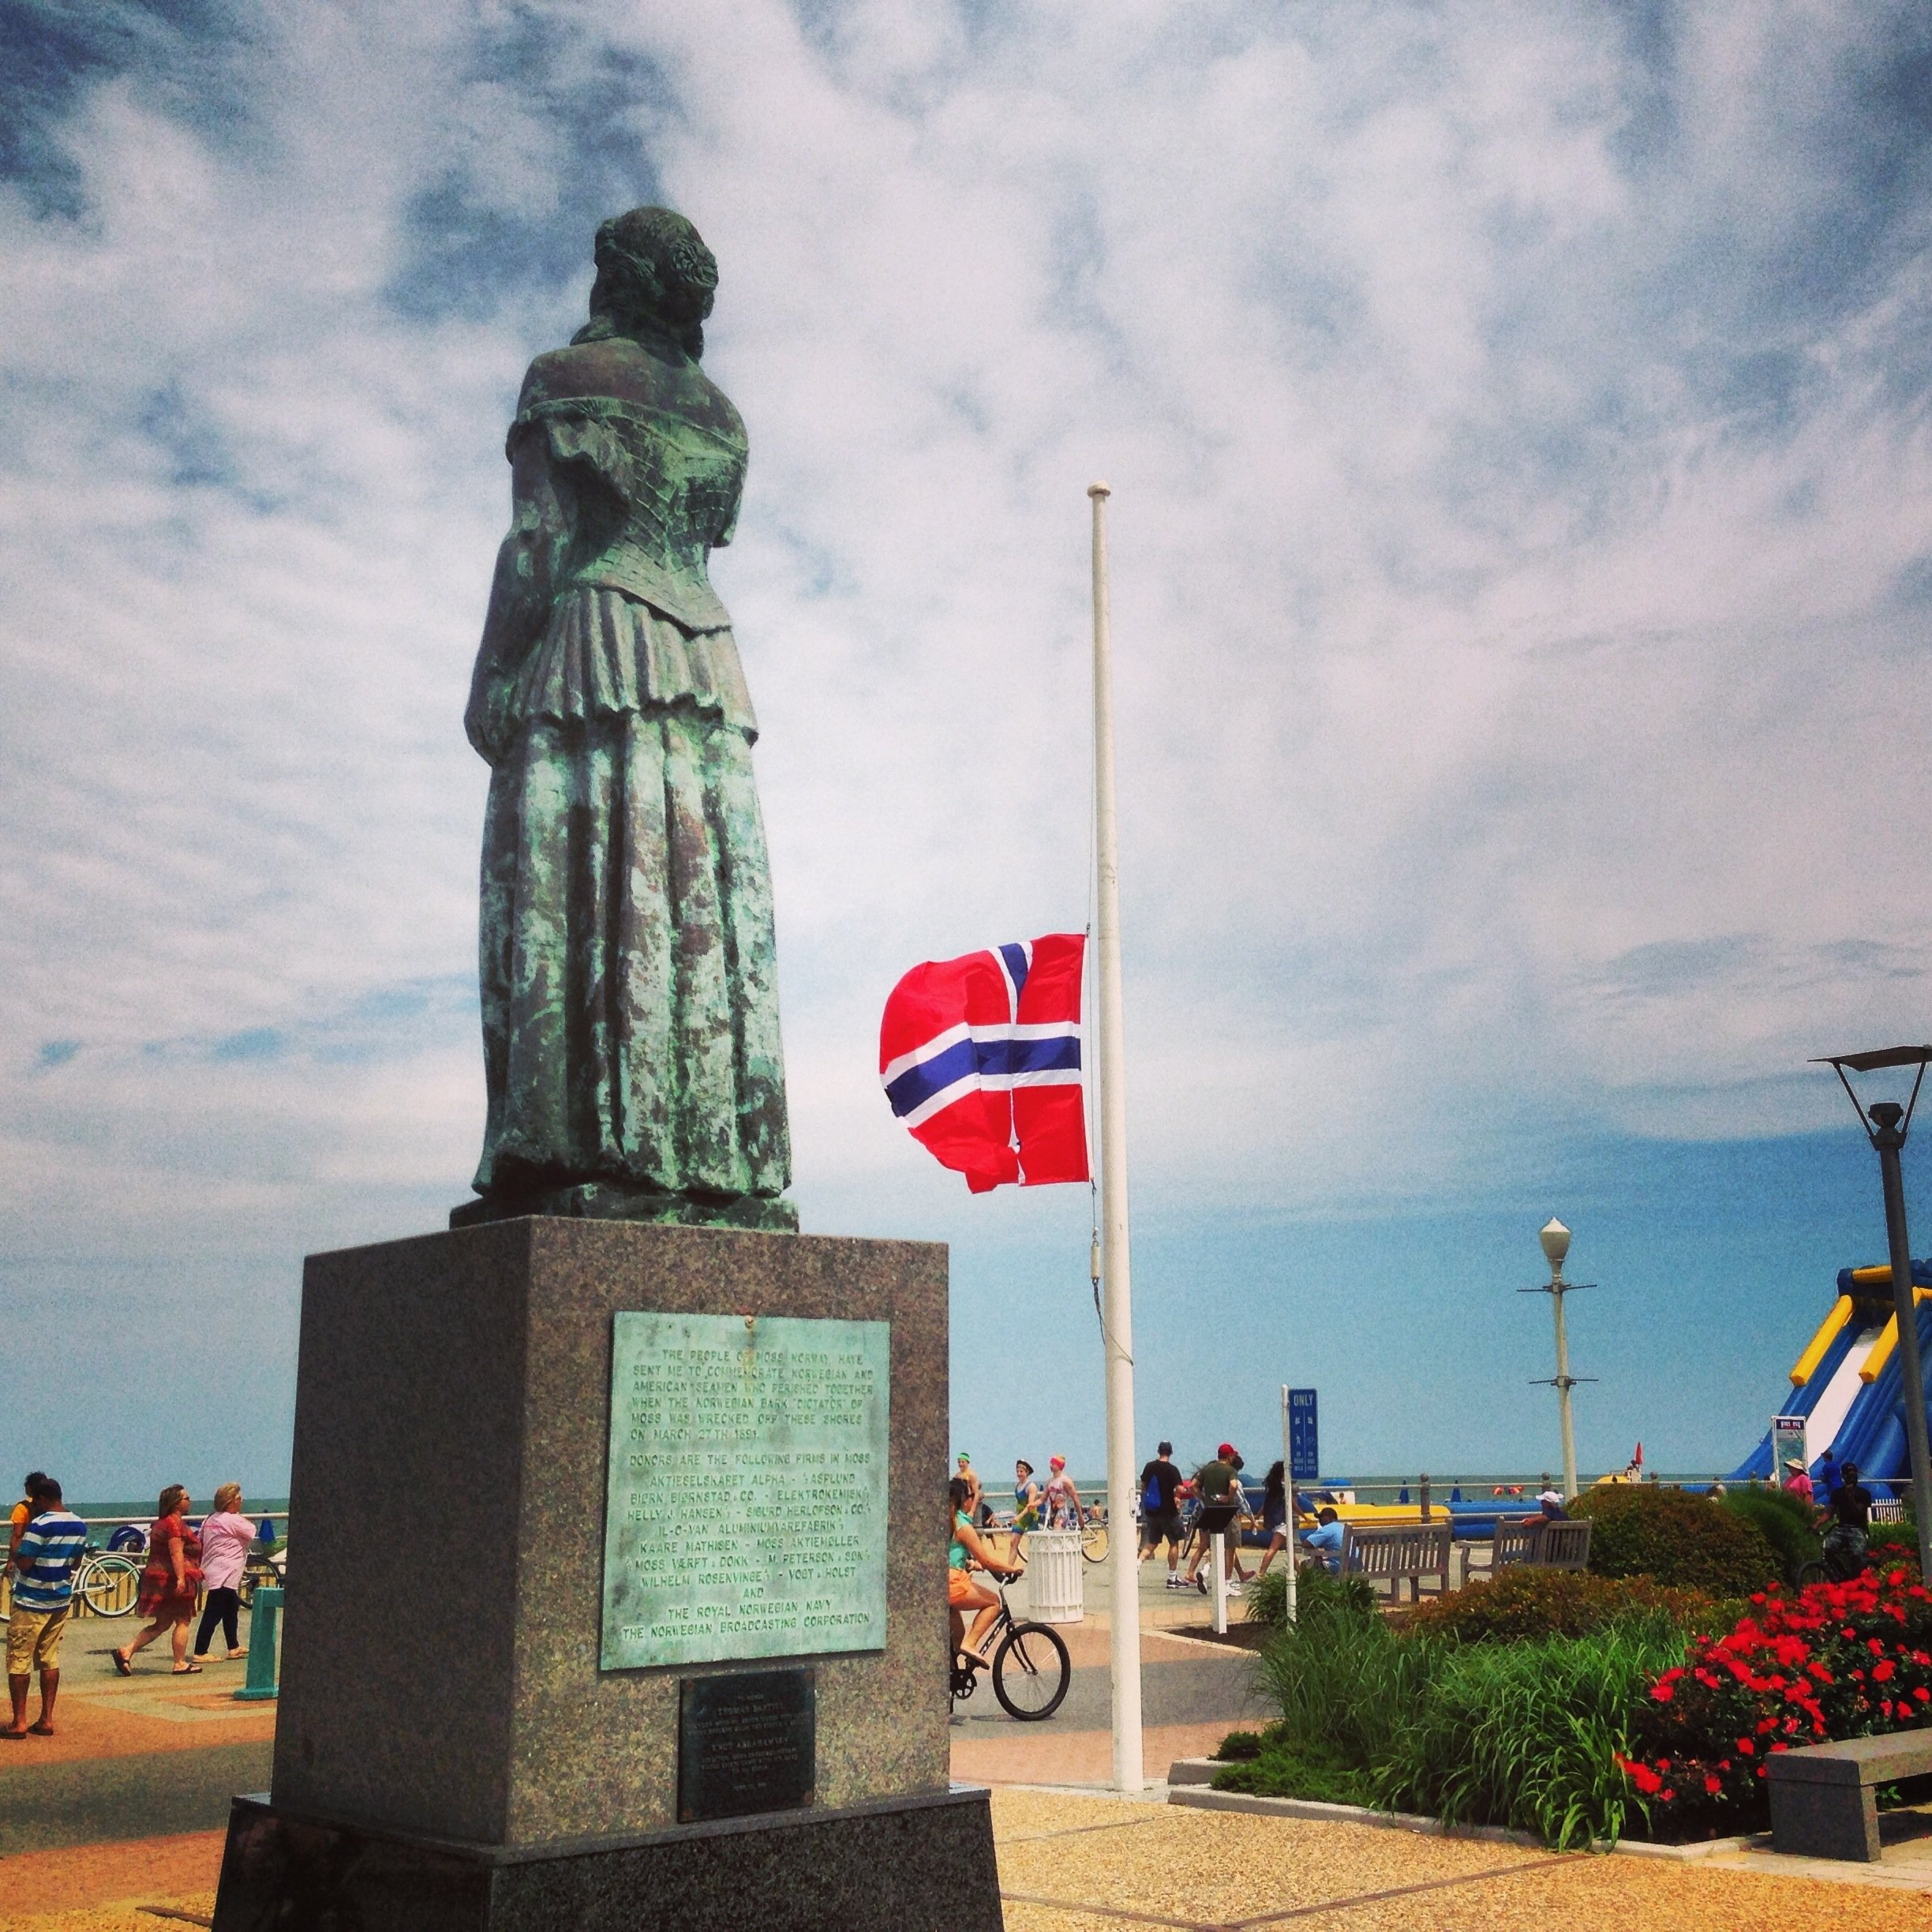 Norwegian Lady Statue with Norwegian flag as seen at Virginia Beach